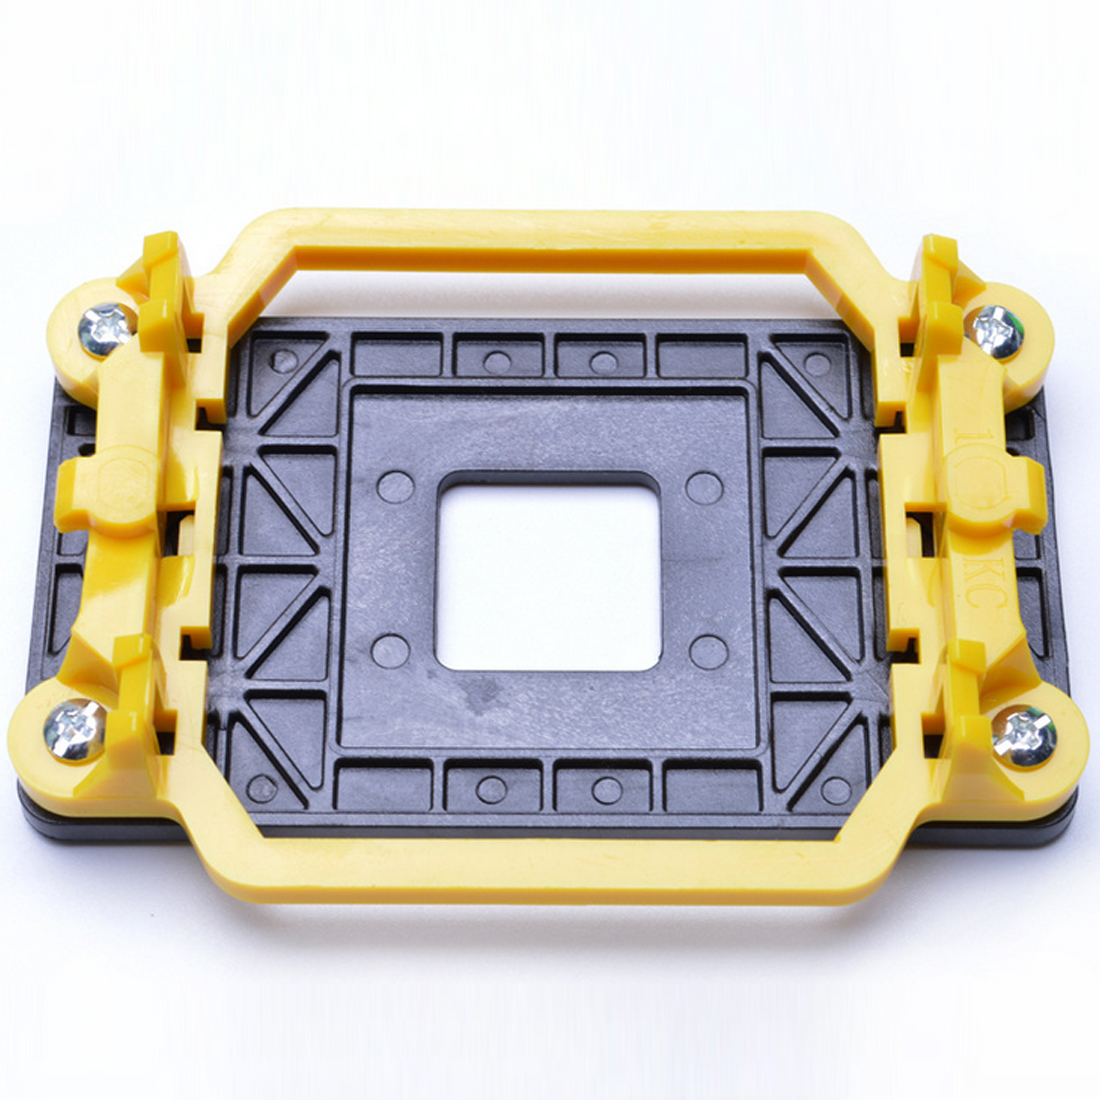 Etmakit New Arrival CPU Cooler Bracket Motherboard for AMD AM2/AM2+/AM3/AM3+/FM1/FM2/FM2+/940/939 Install the fastening image